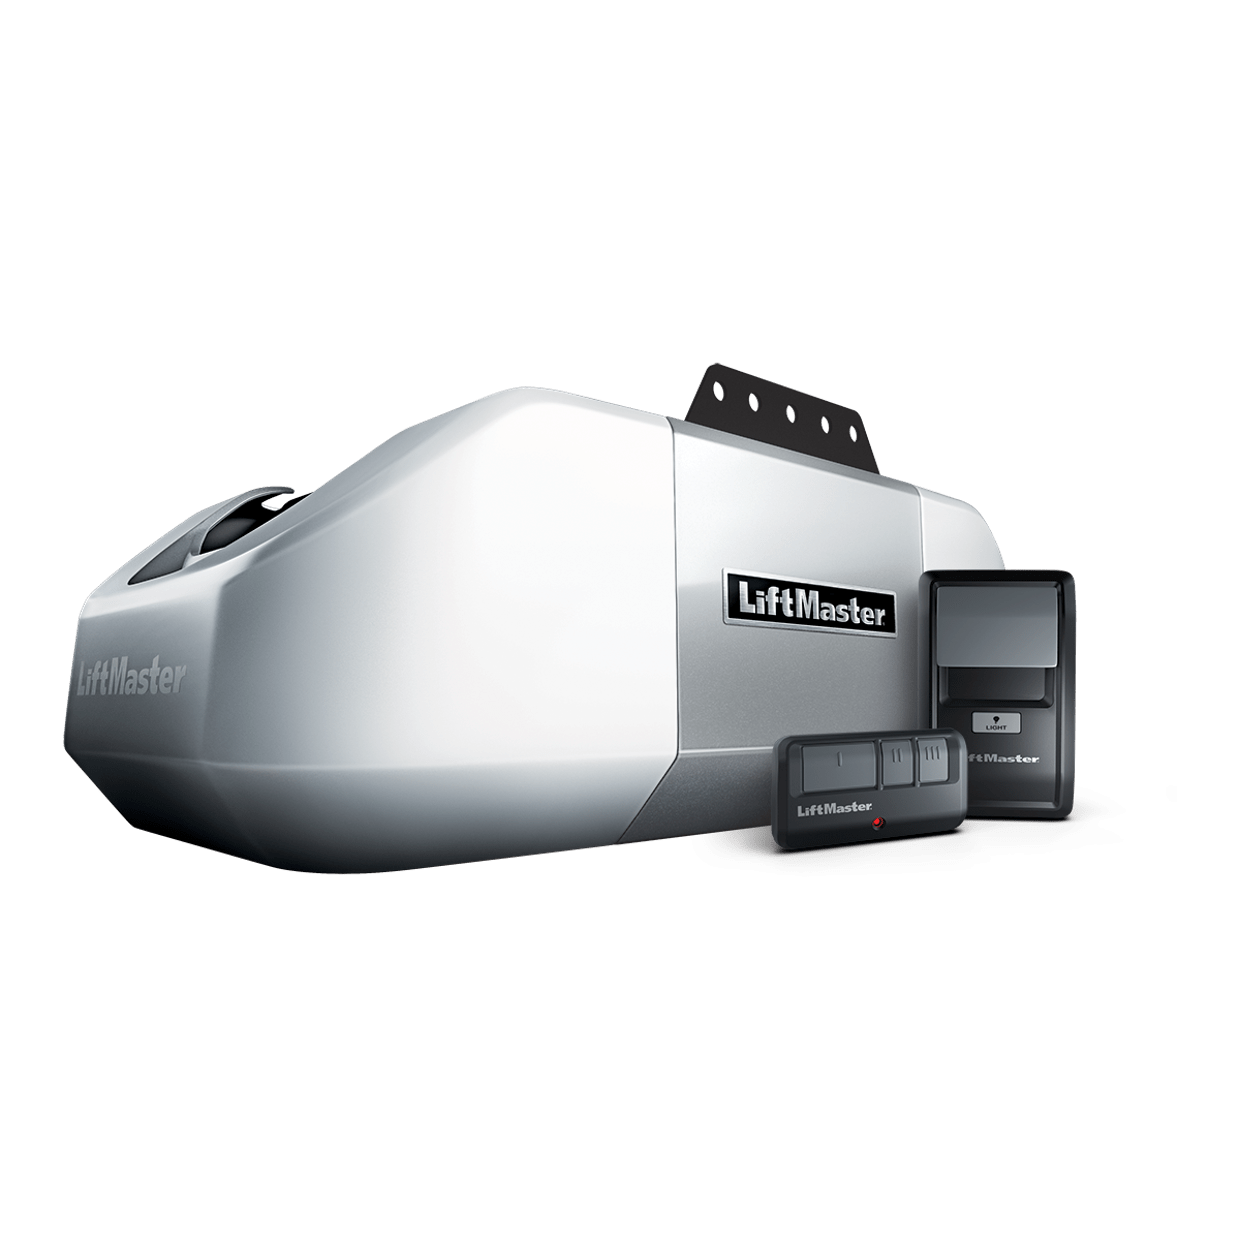 LiftMaster 8355W Residential Garage Door Opener